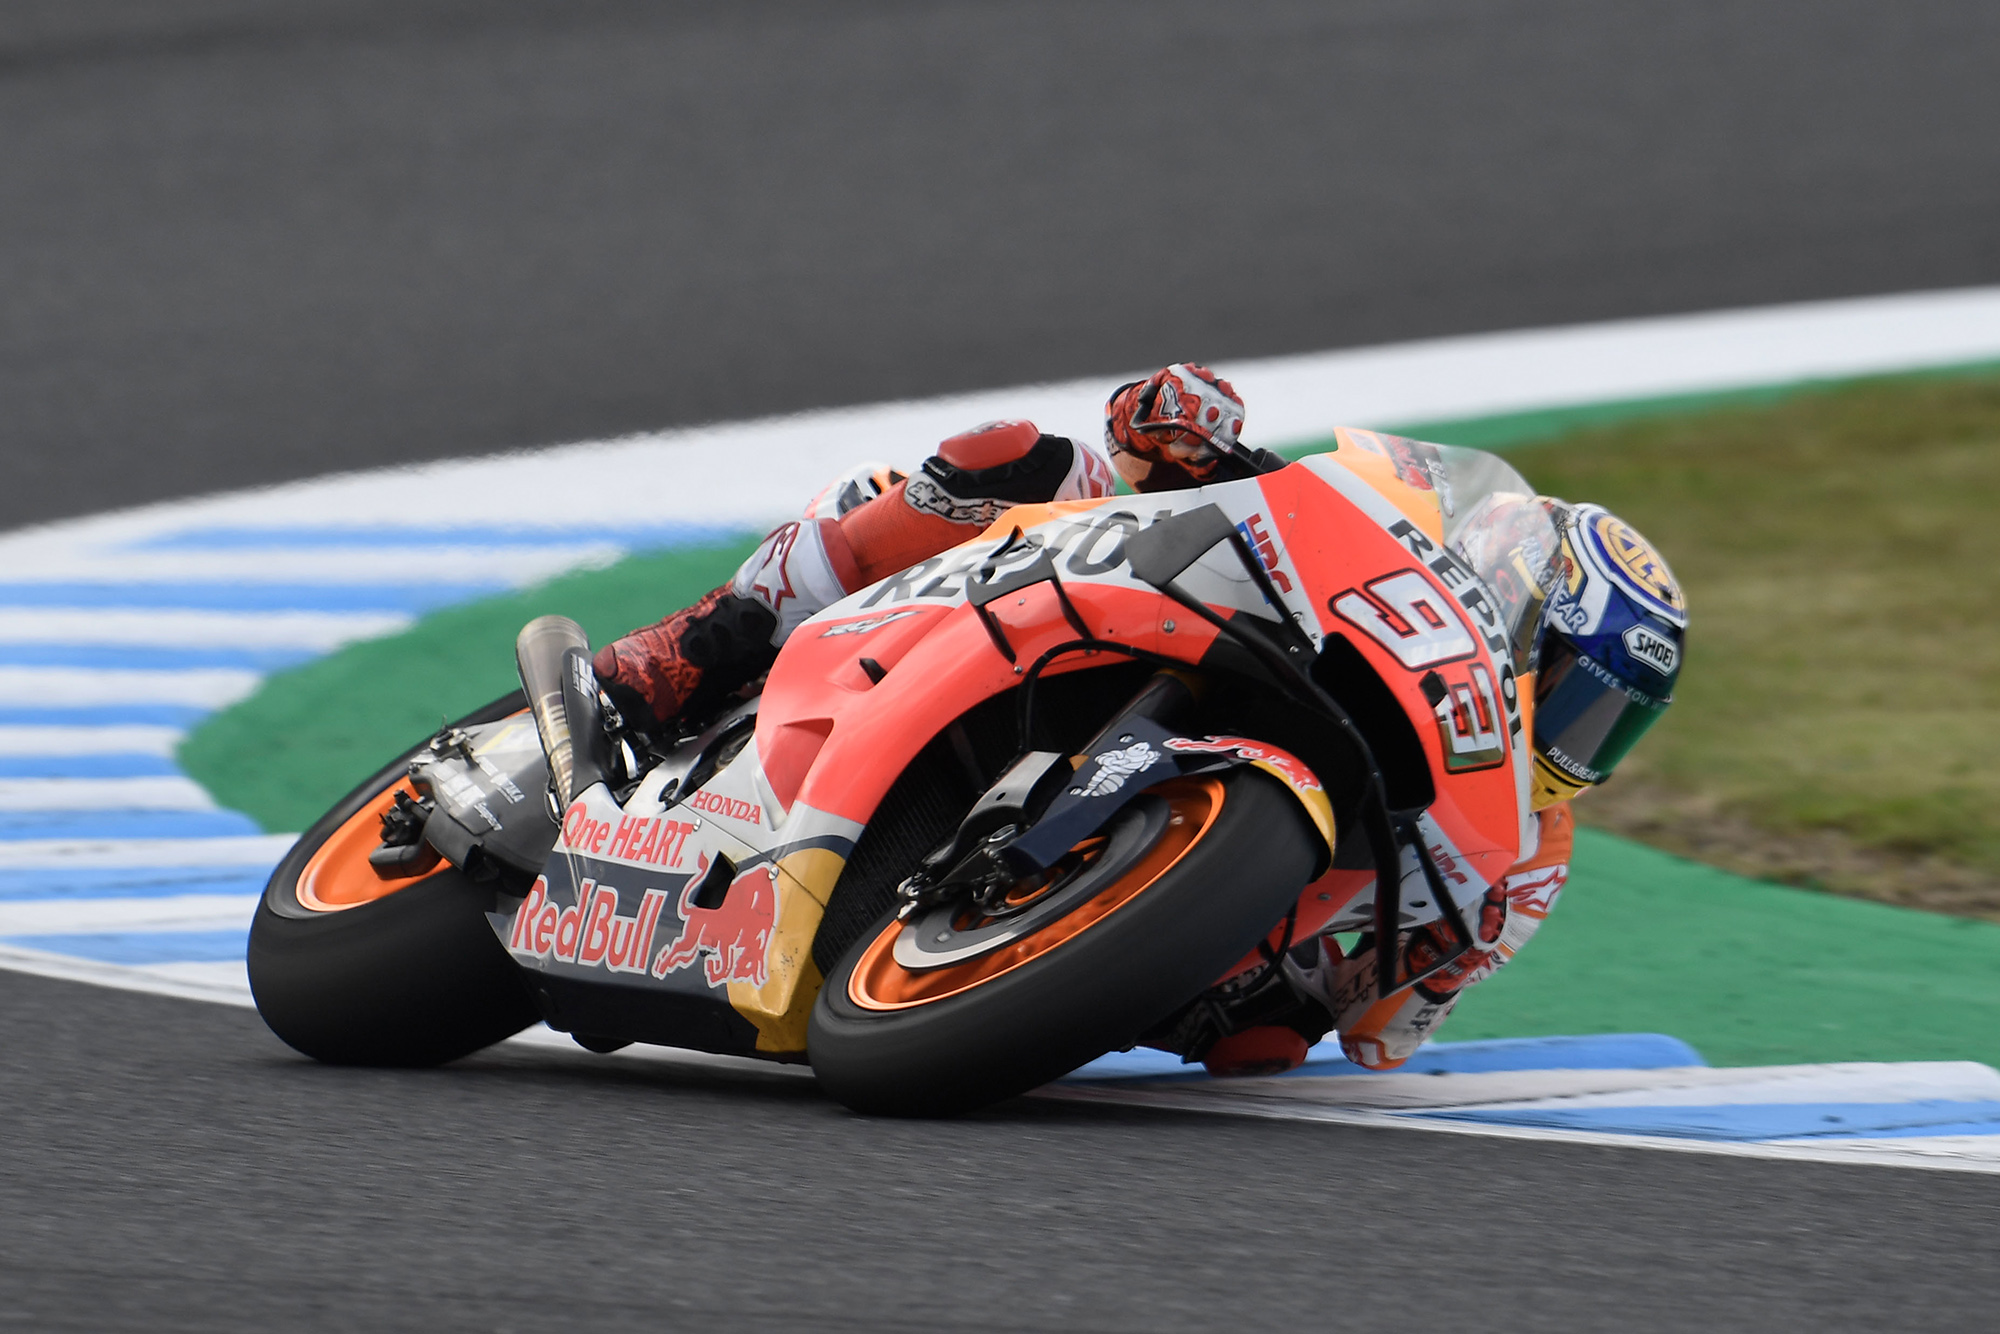 Marc Marquez cornering during the 2019 MotoGP Grand Prix of Japan